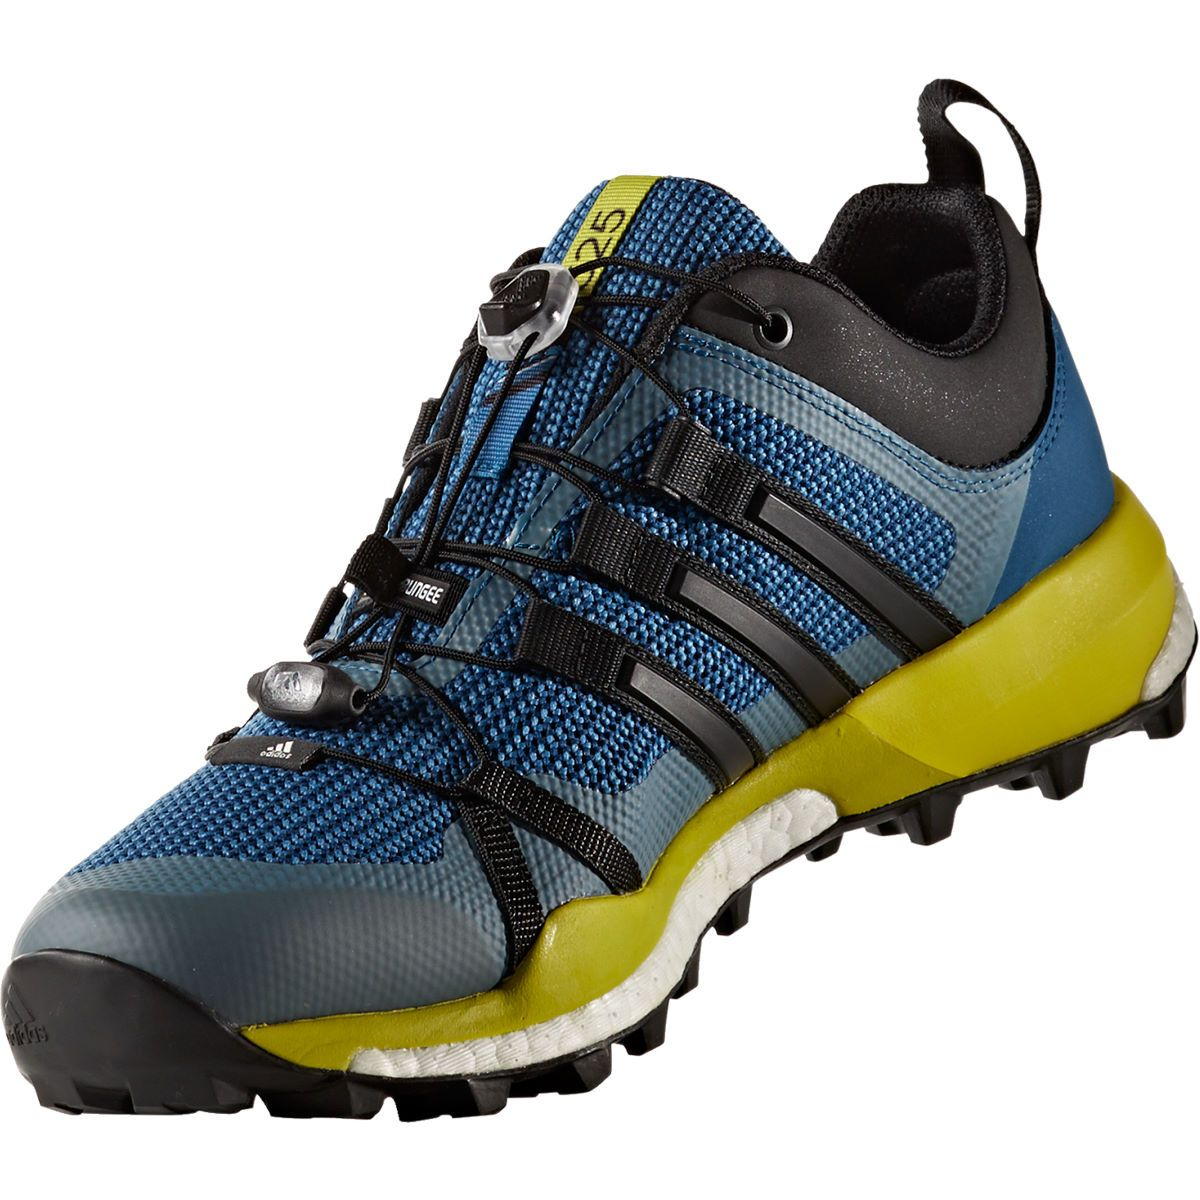 Wiggle adidas terrex skychaser shoes fast hike shoes